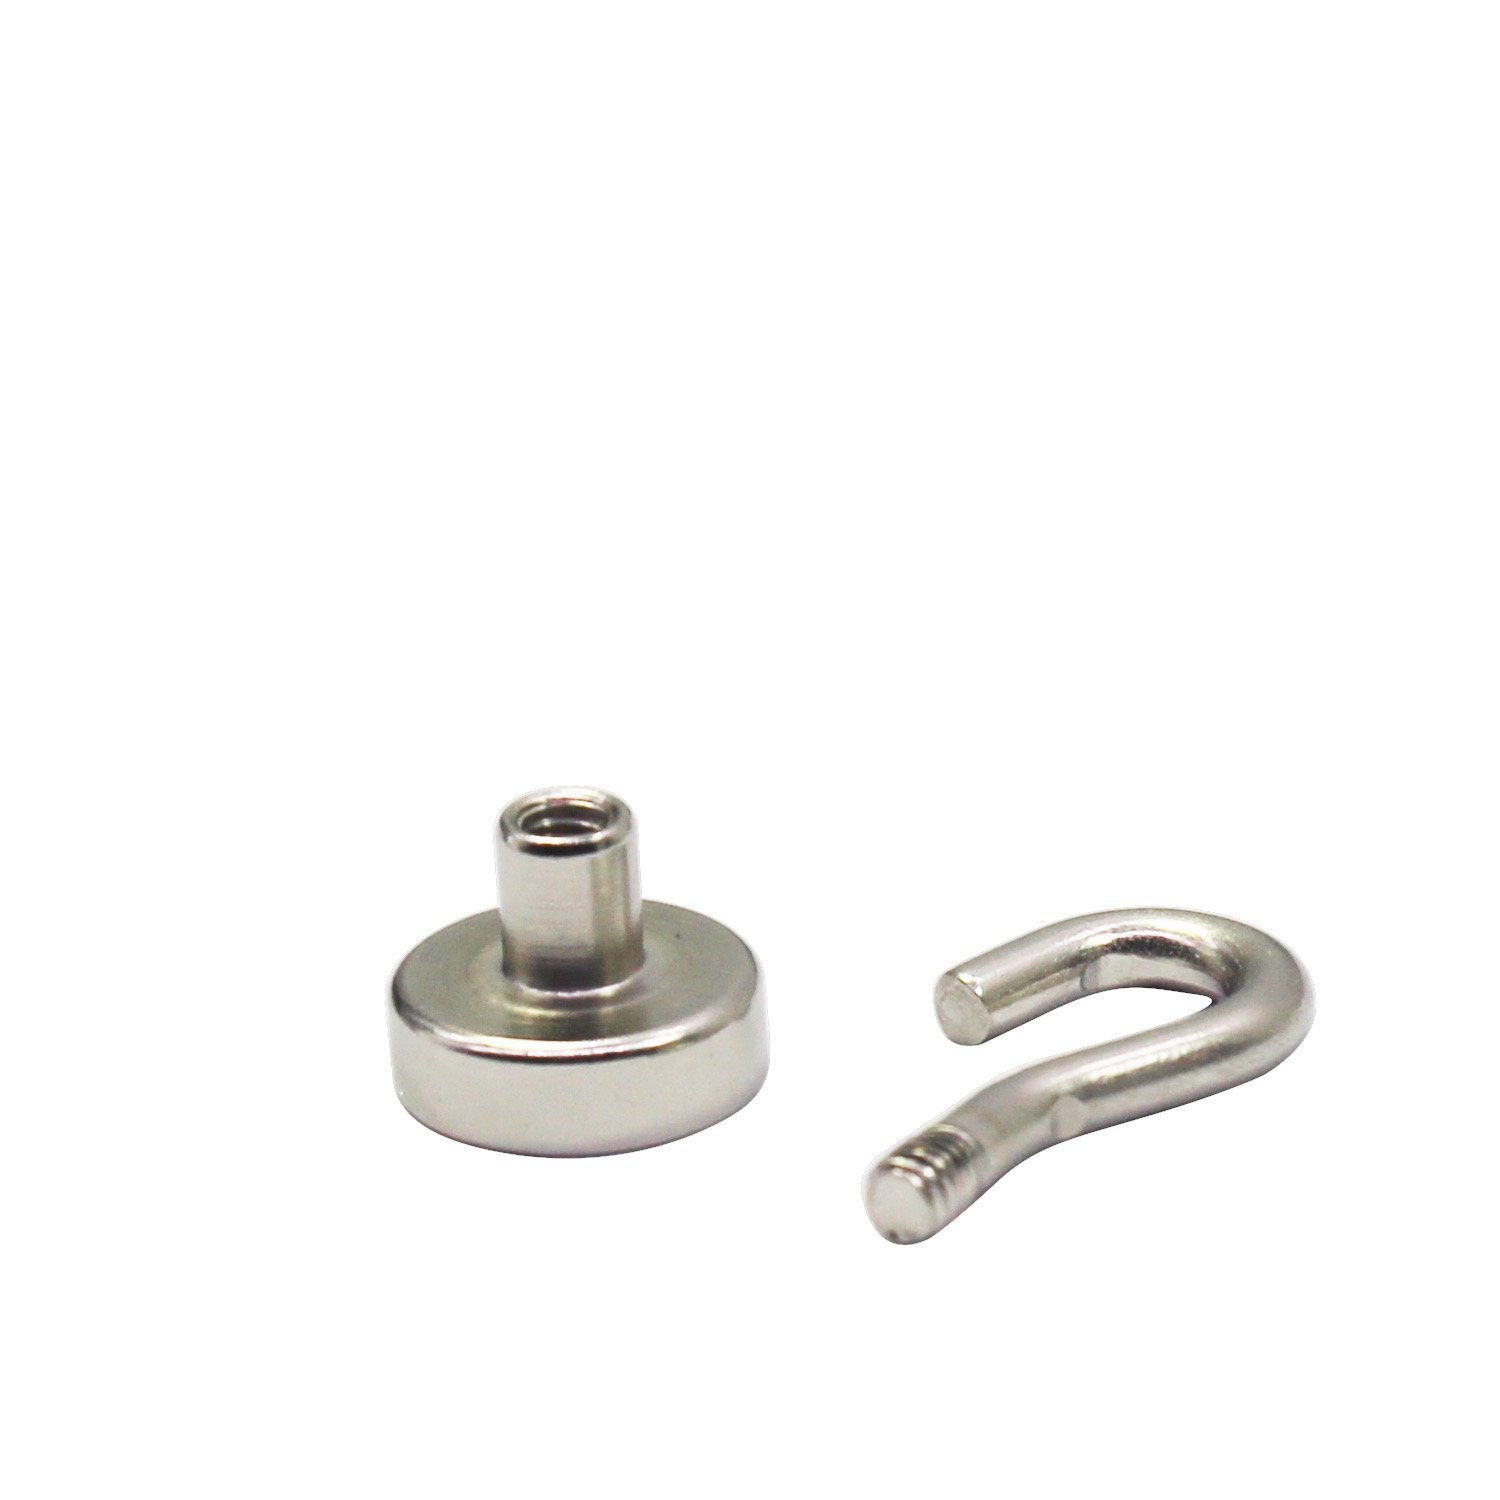 Strong Neodymium Heavy Duty Magnetic Hook 12 LBS 20 Pack For Kitchen, Office, Garage, Home, Workplace by HongsMarket (Image #5)